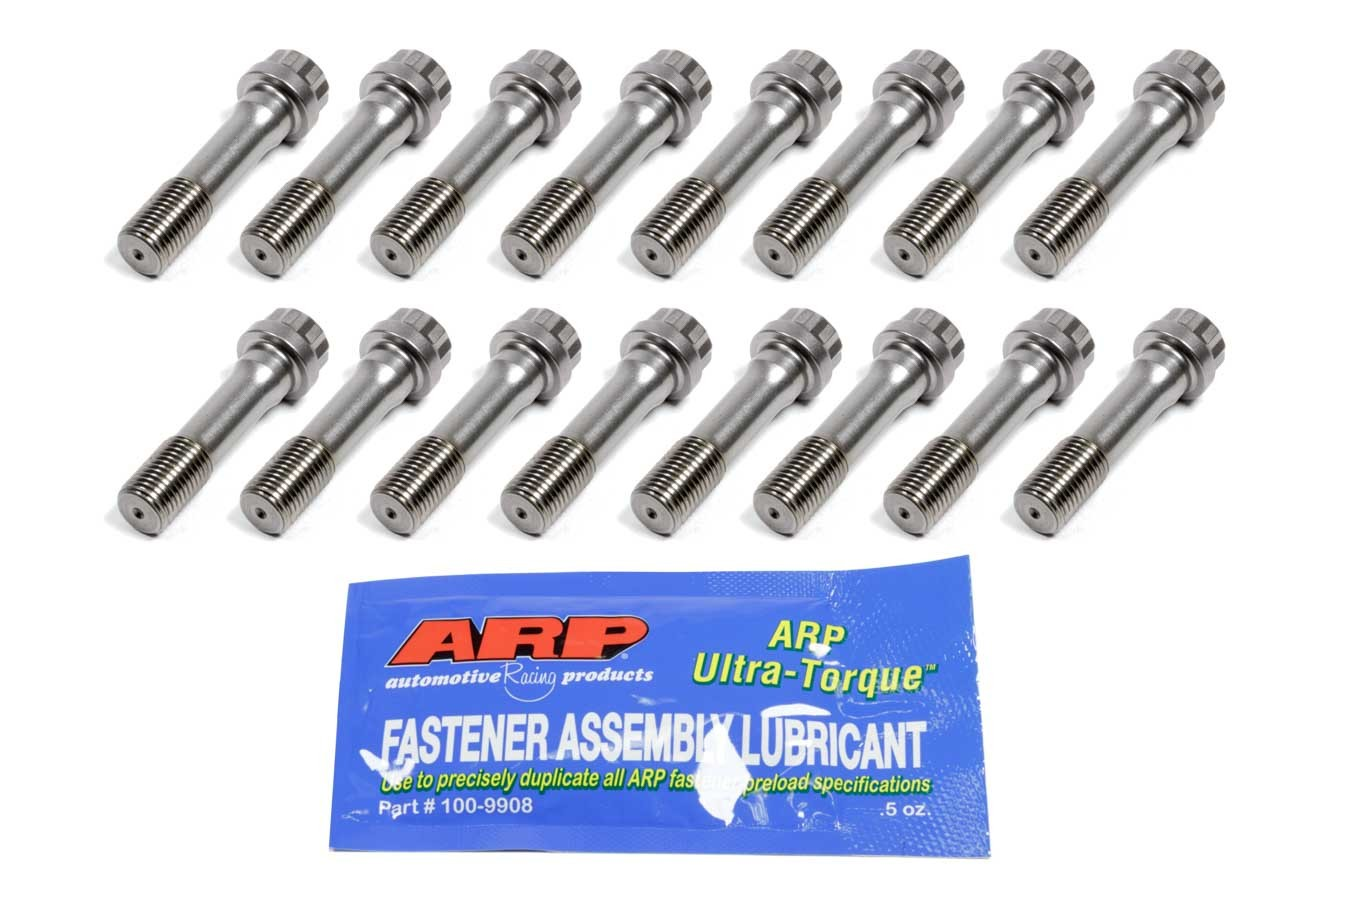 EAG14020 Eagle 7/16 x 1.750 ARP L19 Rod Bolt Set (16)